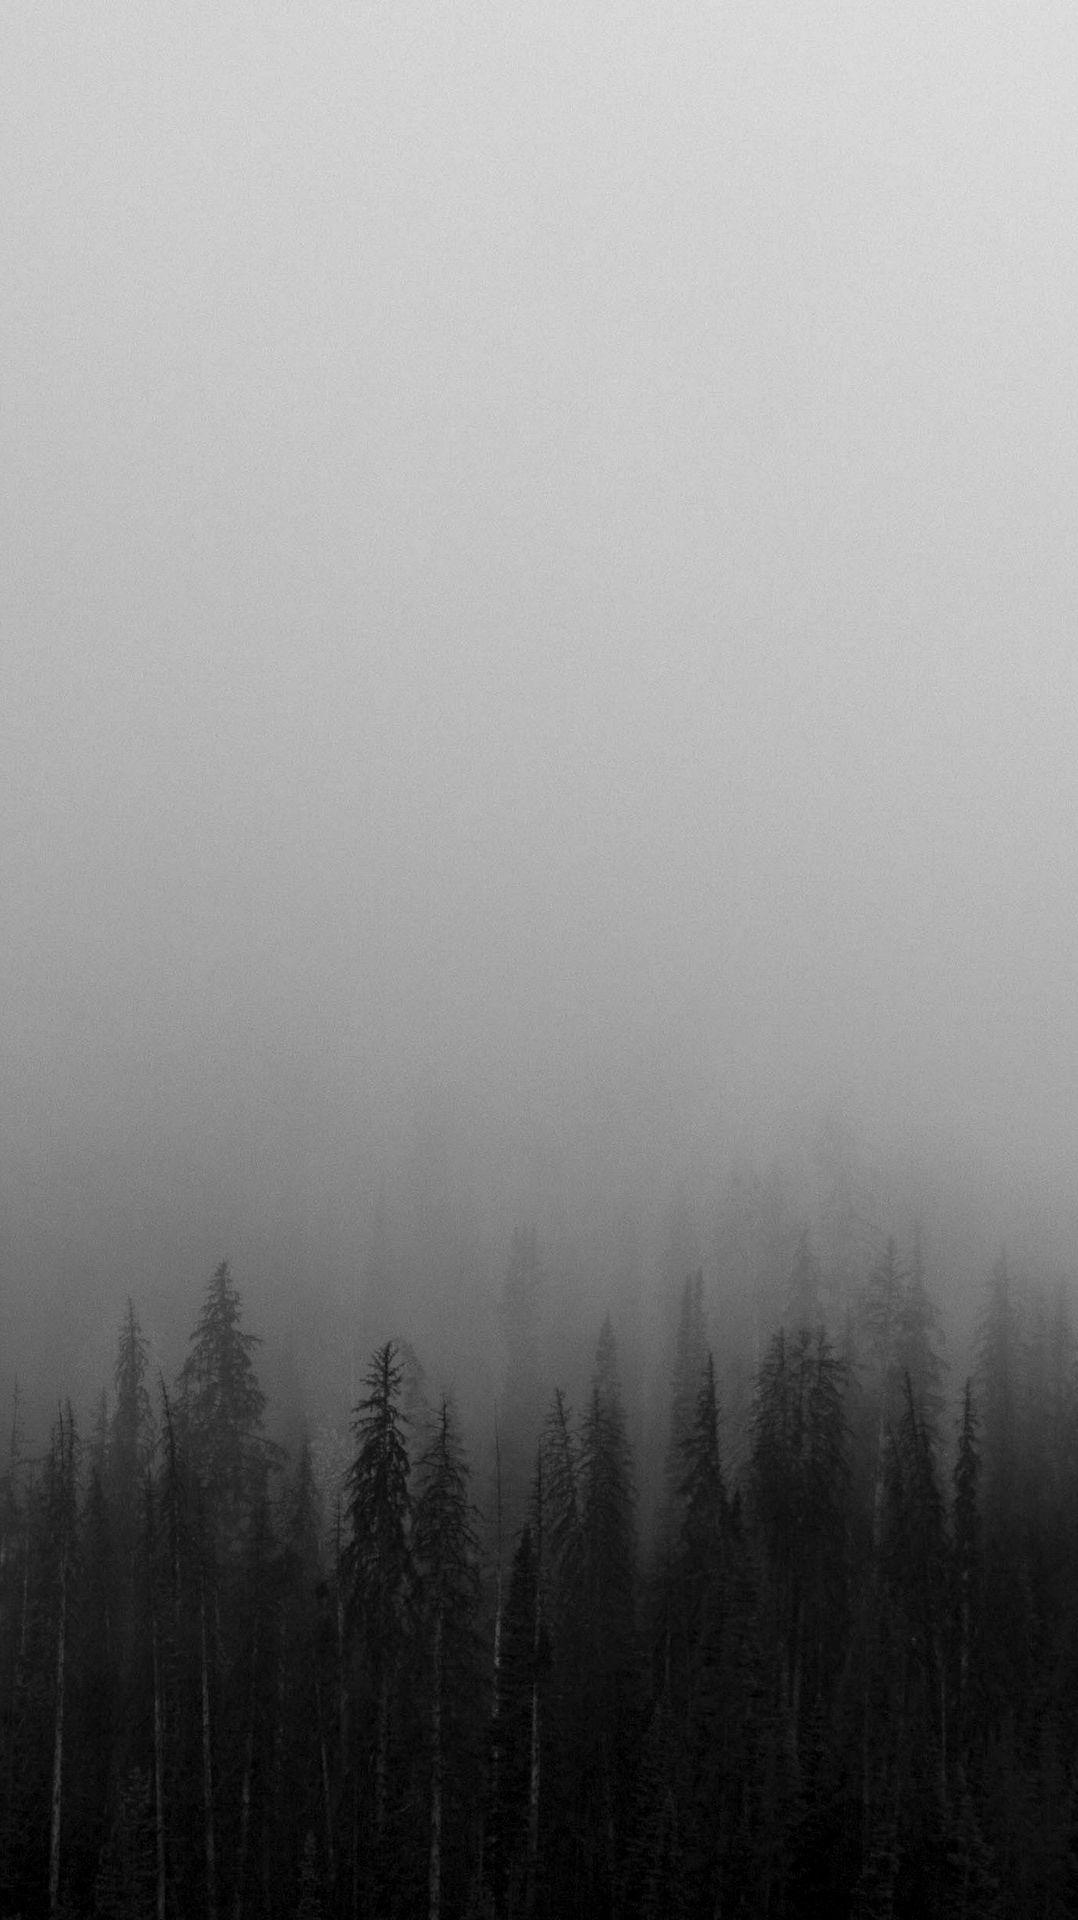 Black-and-White-Mist-Forests-Wallpaper | iPhone Wallpapers in 2019 ...